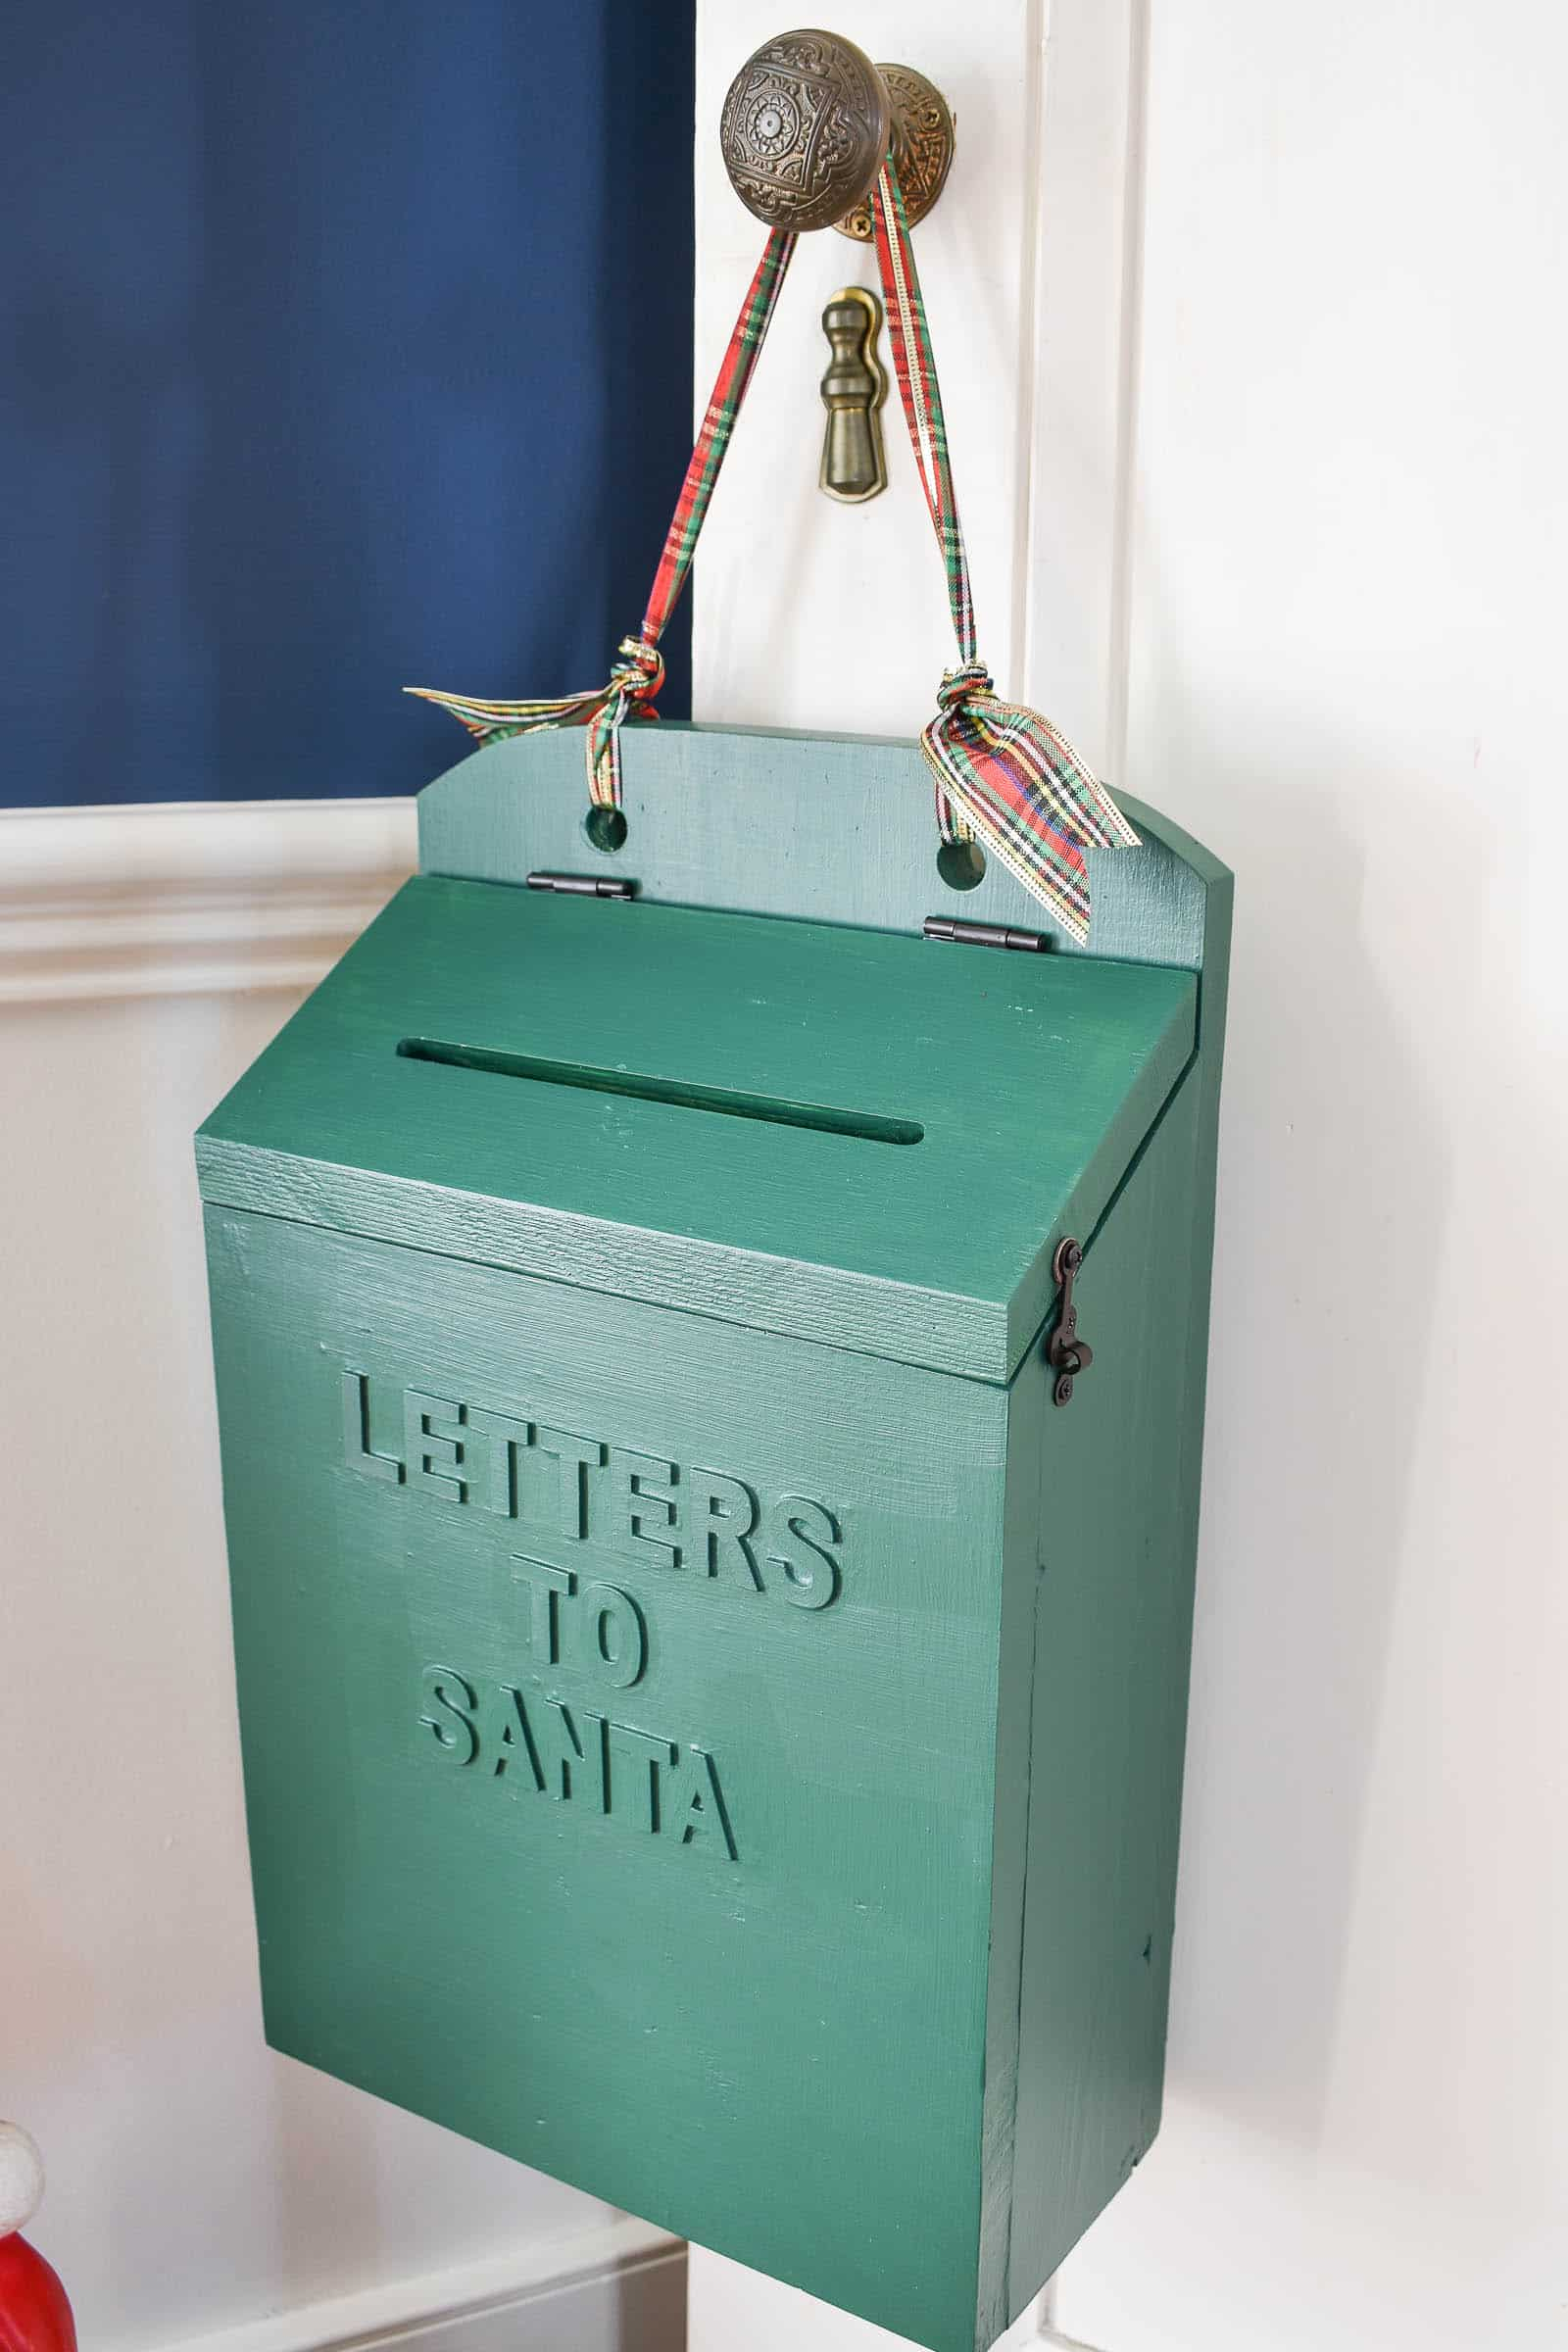 wooden diy mailbox for letters to santa